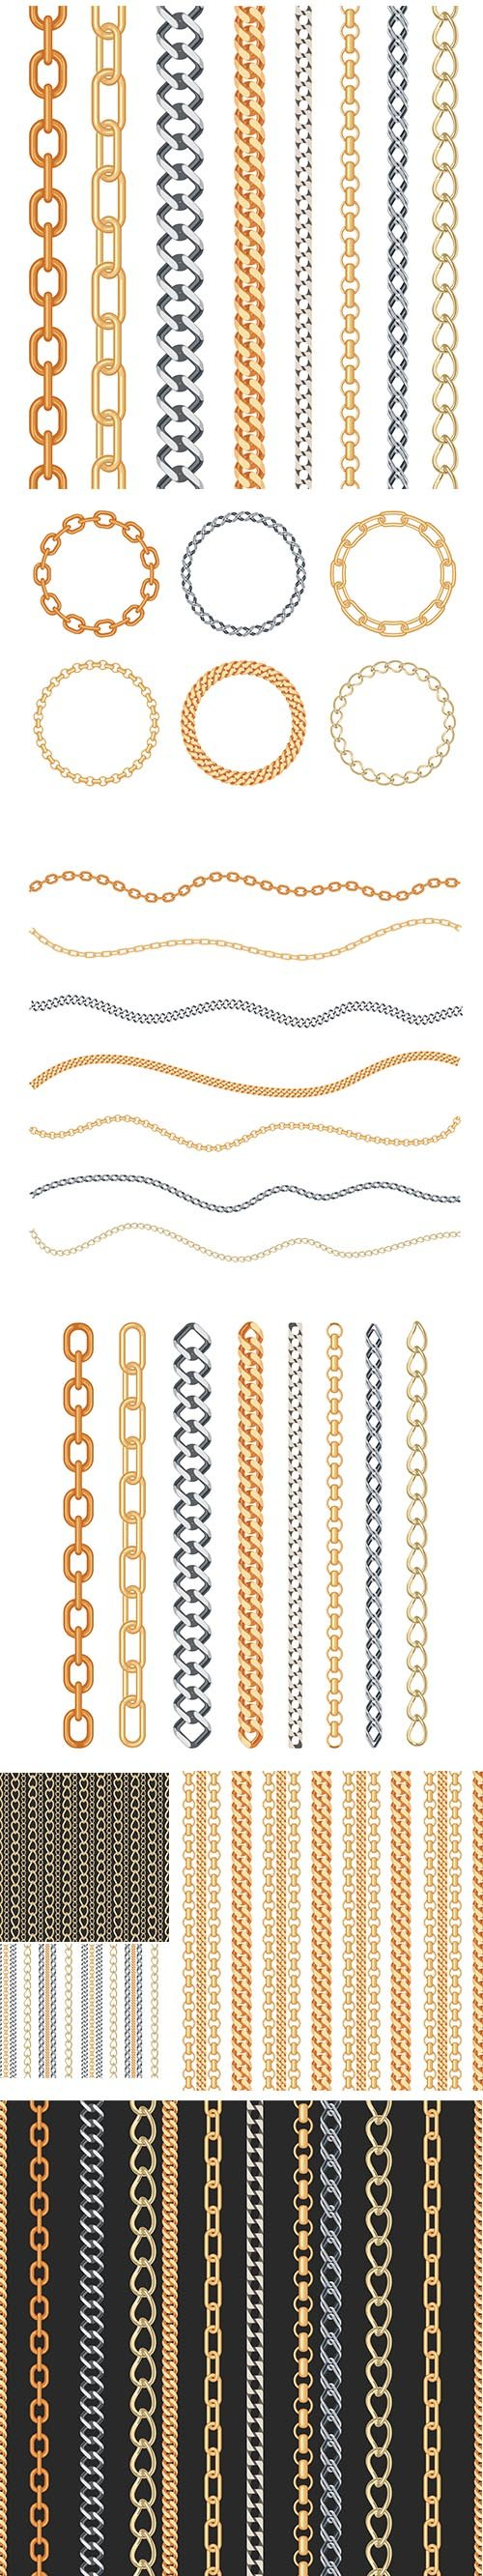 Fashion Golden and Silver Chain with Isolated Jewelry and Seamless Pattern Set